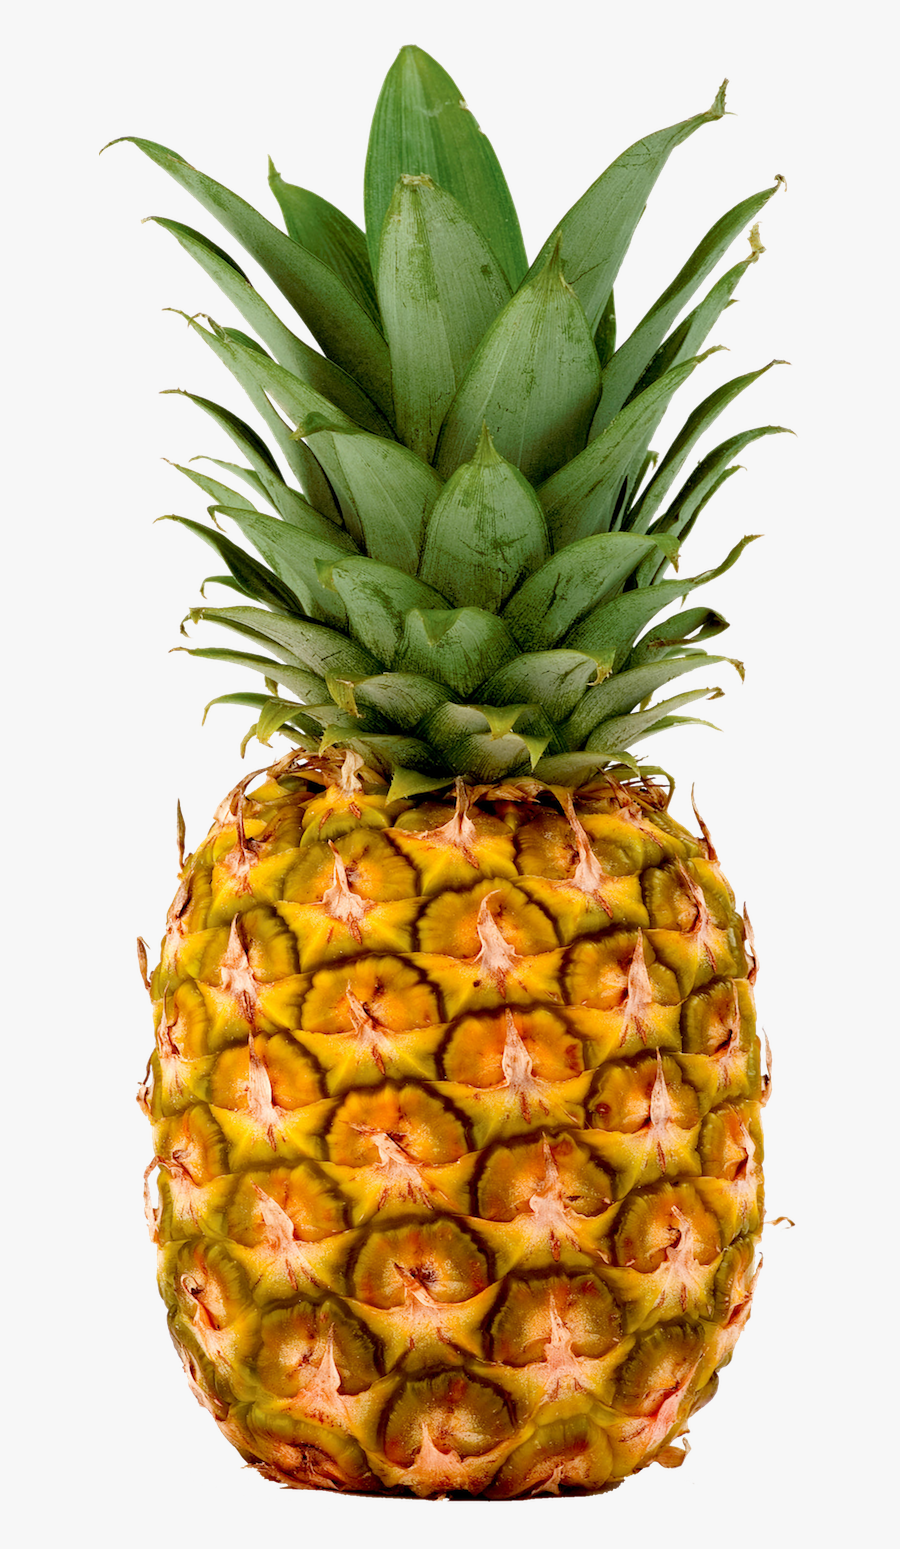 Pineapple, Pineapples Fresh Imports - Pineapple Png, Transparent Clipart